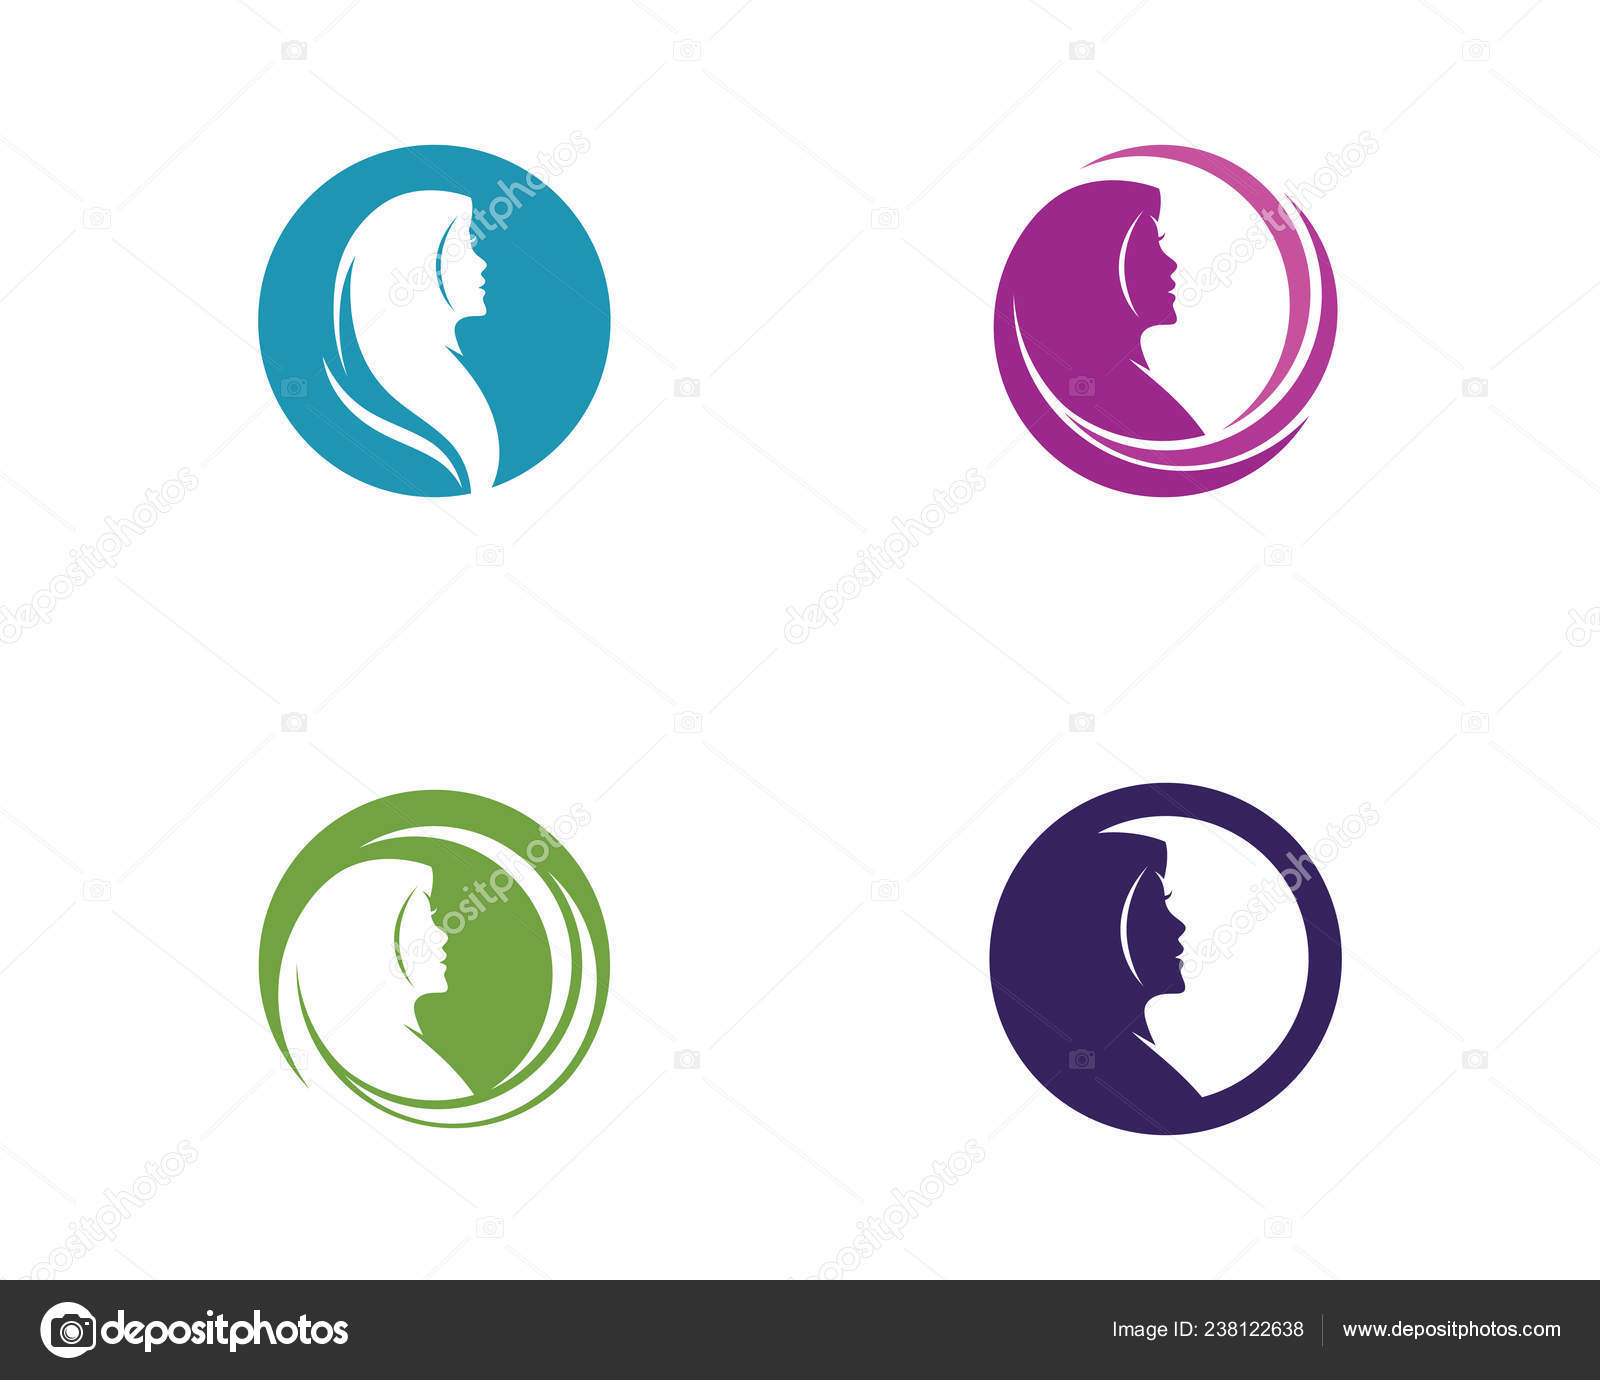 Find the best niqab stock photos for your project. 607 Muslimah Girl Vector Images Free Royalty Free Muslimah Girl Vectors Depositphotos